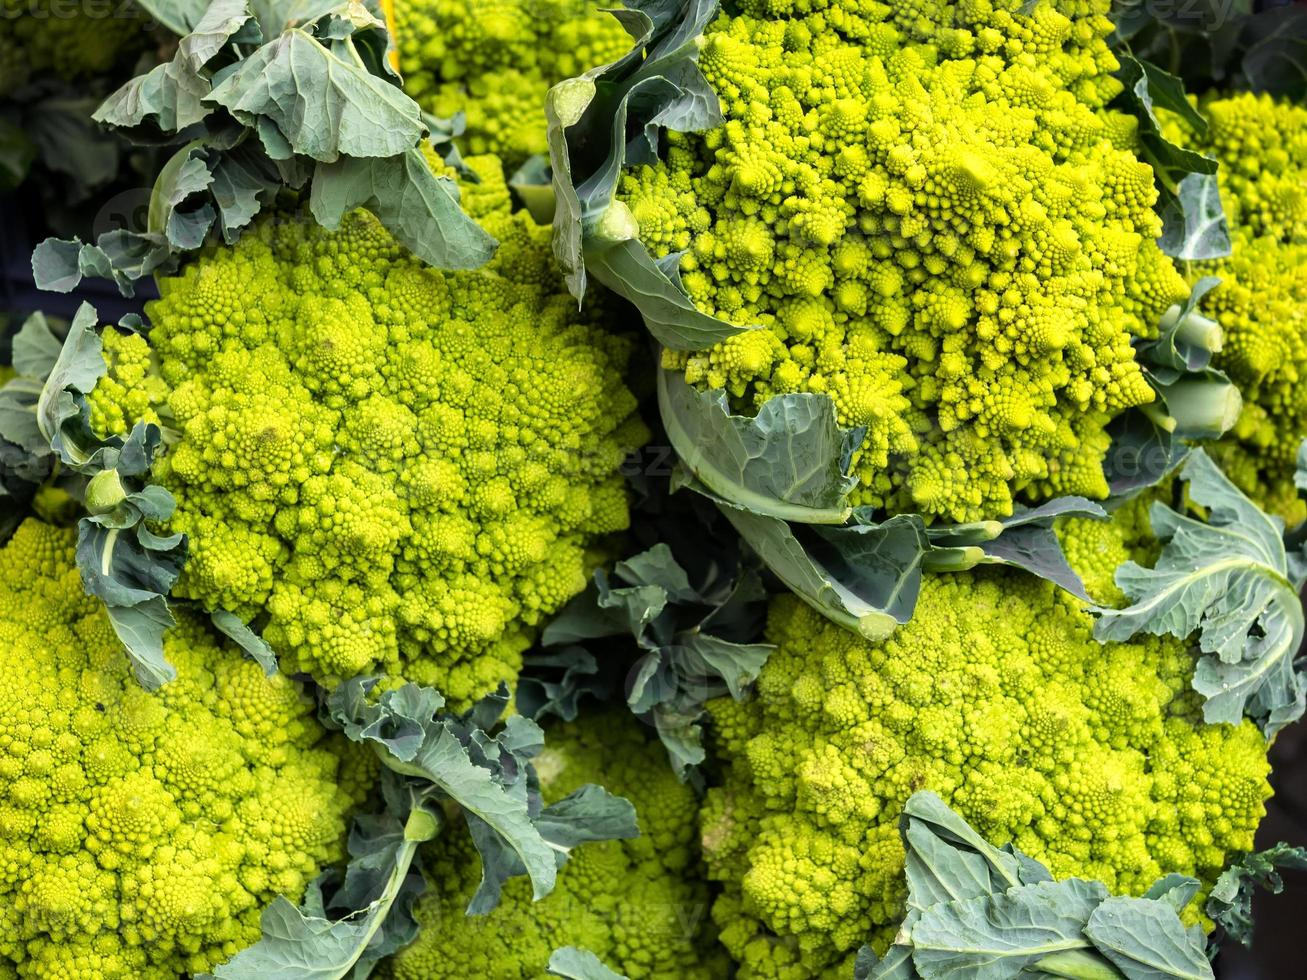 Calabrese green broccoli cabbage photo